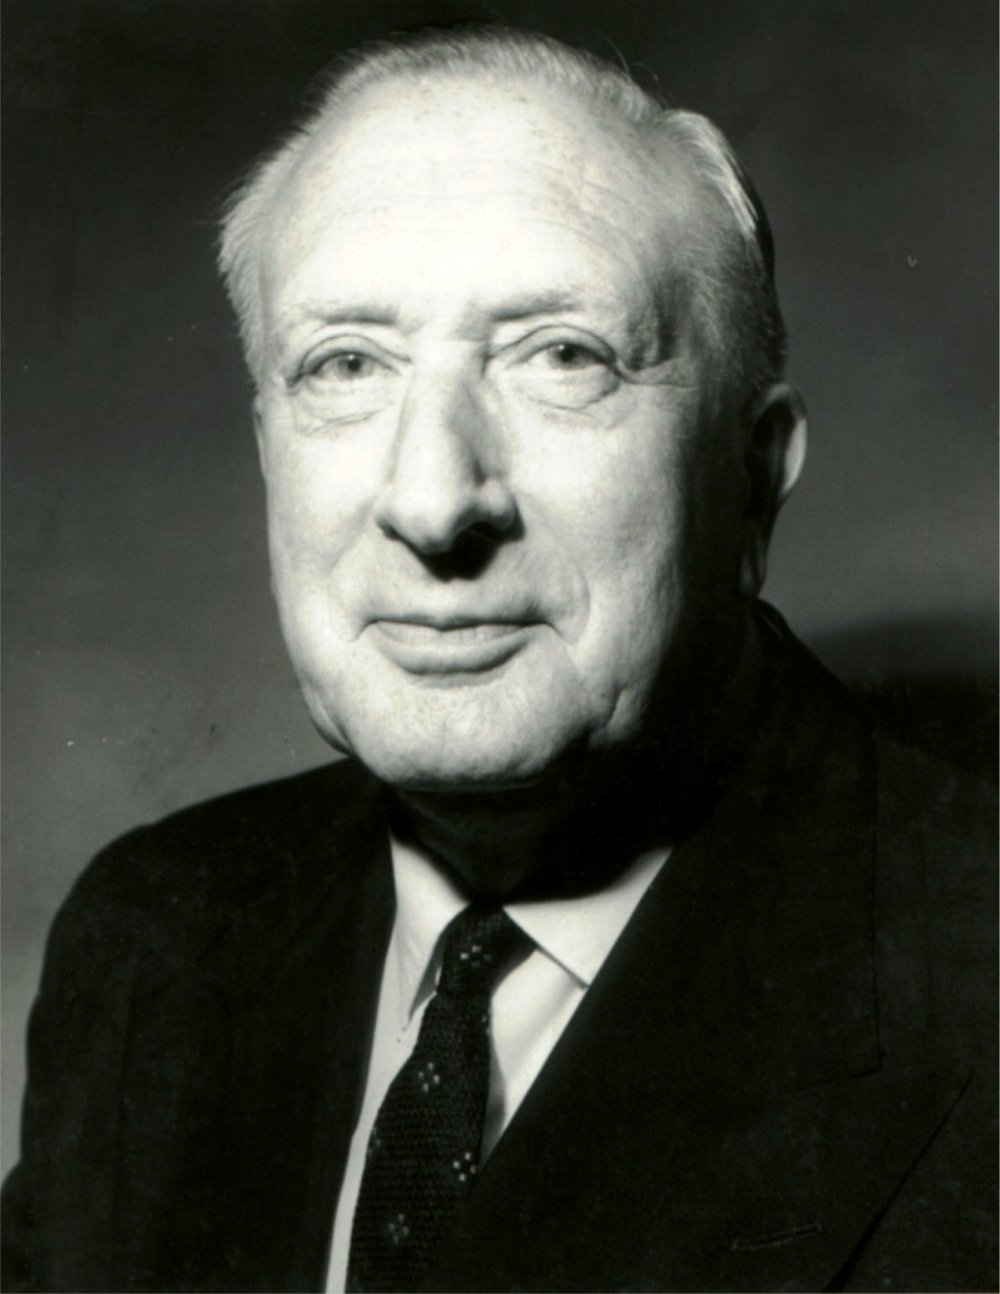 William Walton (1902-1983)